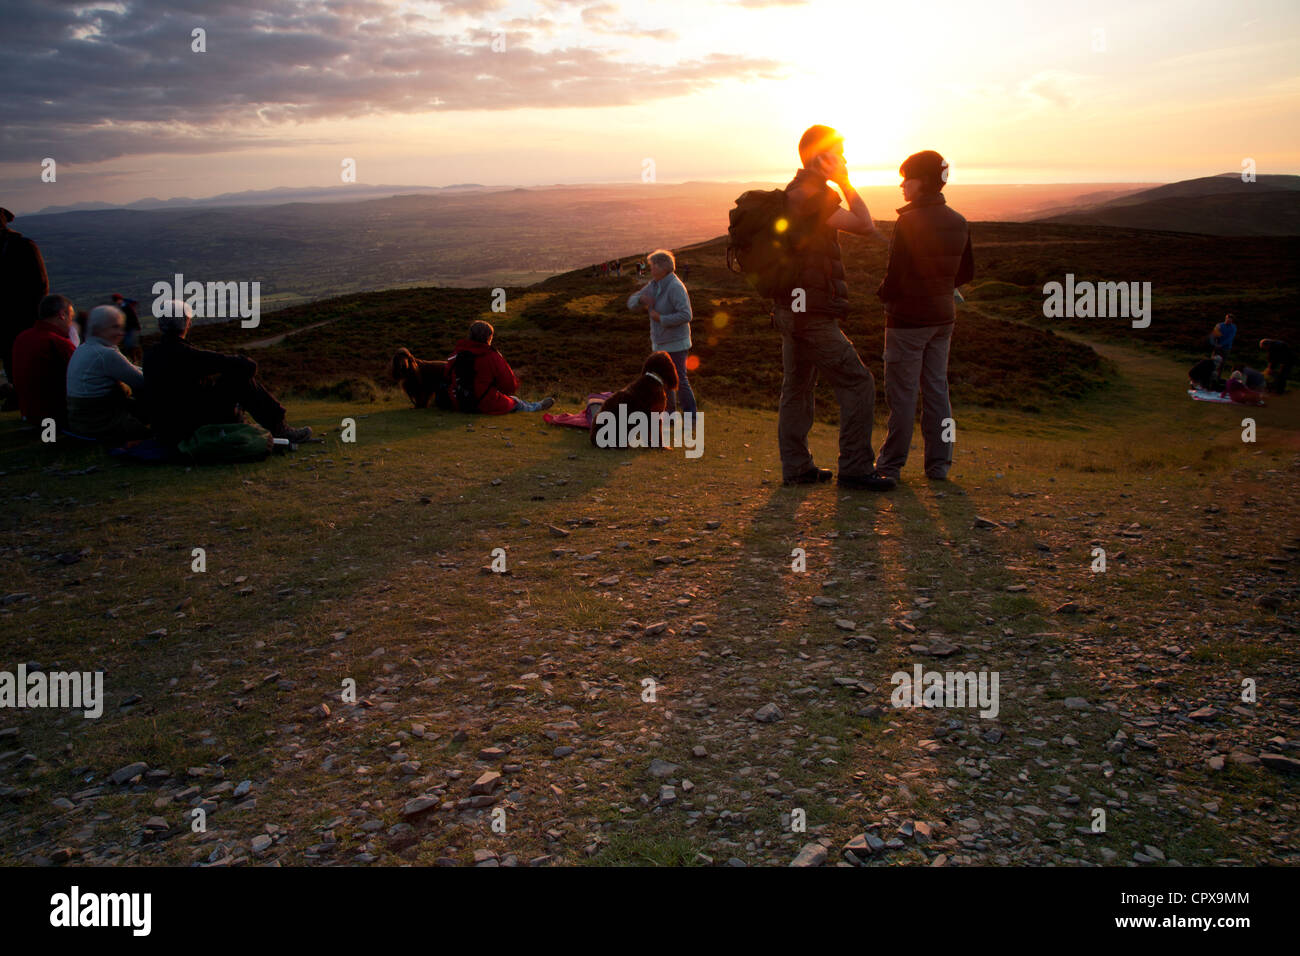 Hill walkers at Moel Famau the highest peak in the Clwydian Range at sunset enjoying the landscape and view of vale - Stock Image